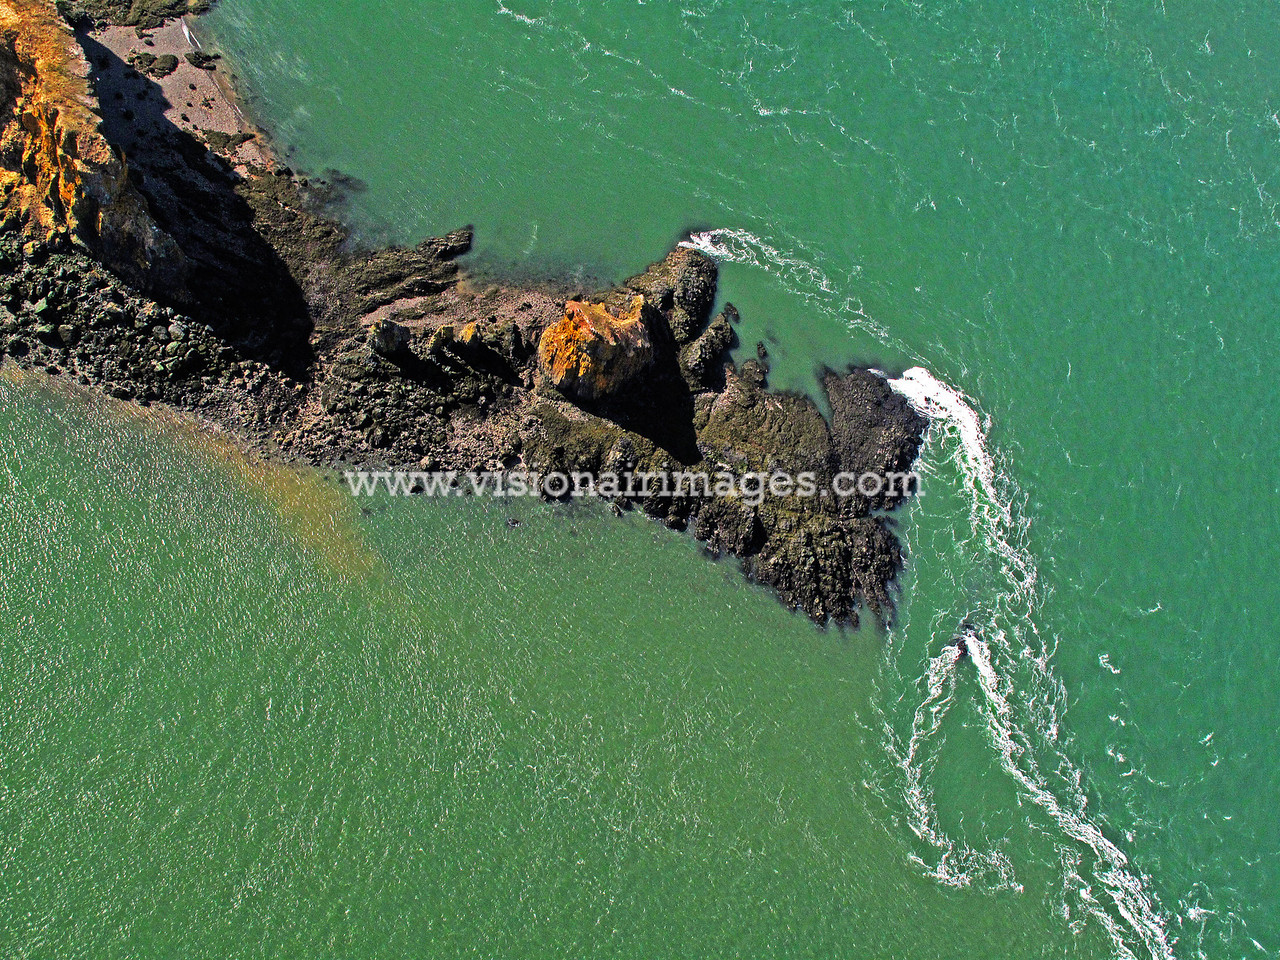 Cape Split, Tidal Current, Bay of Fundy, Nova Scotia, Canada, Vertical, Aerial